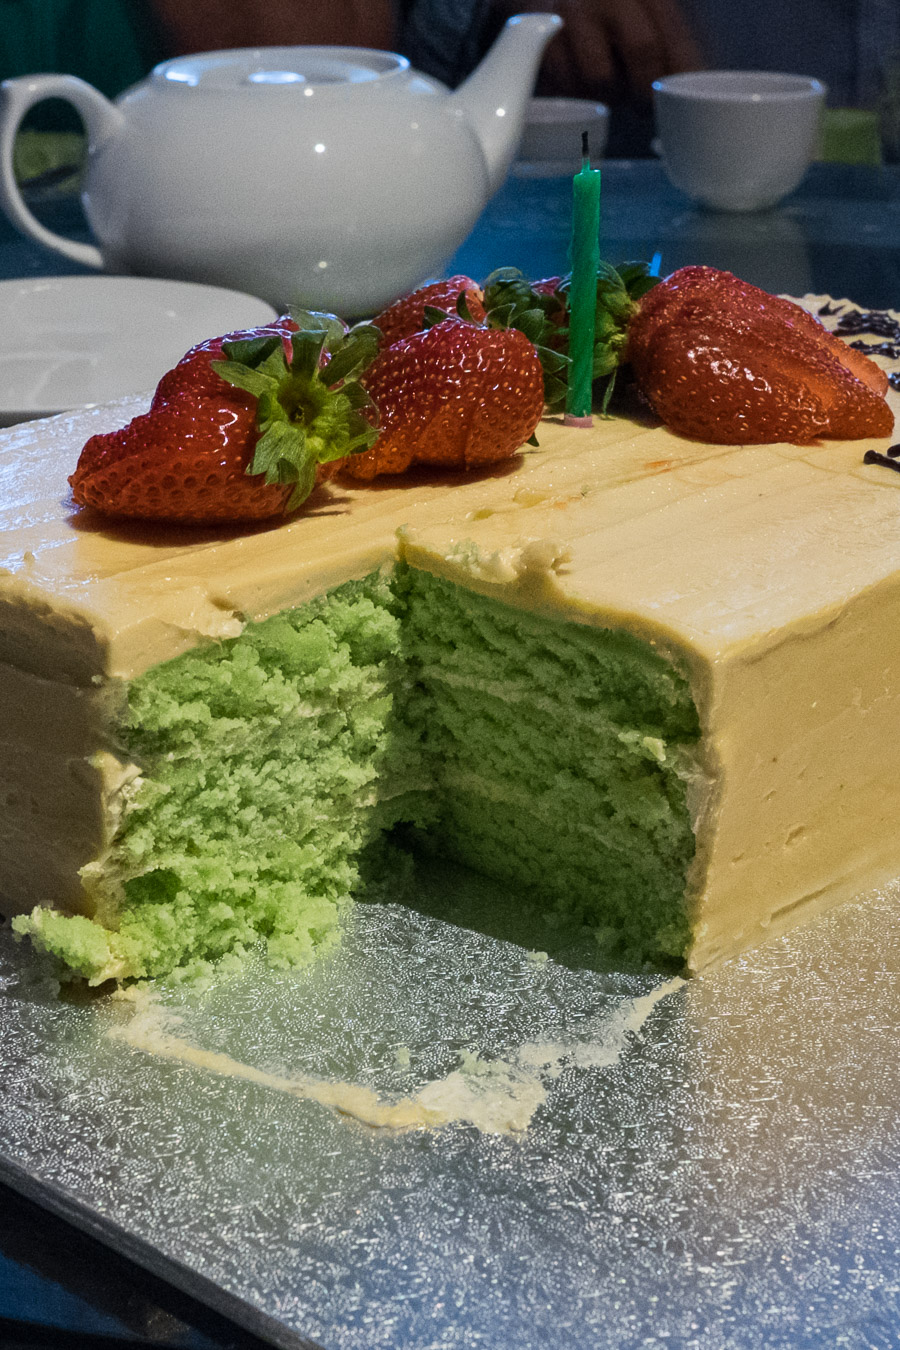 Love the green cake!